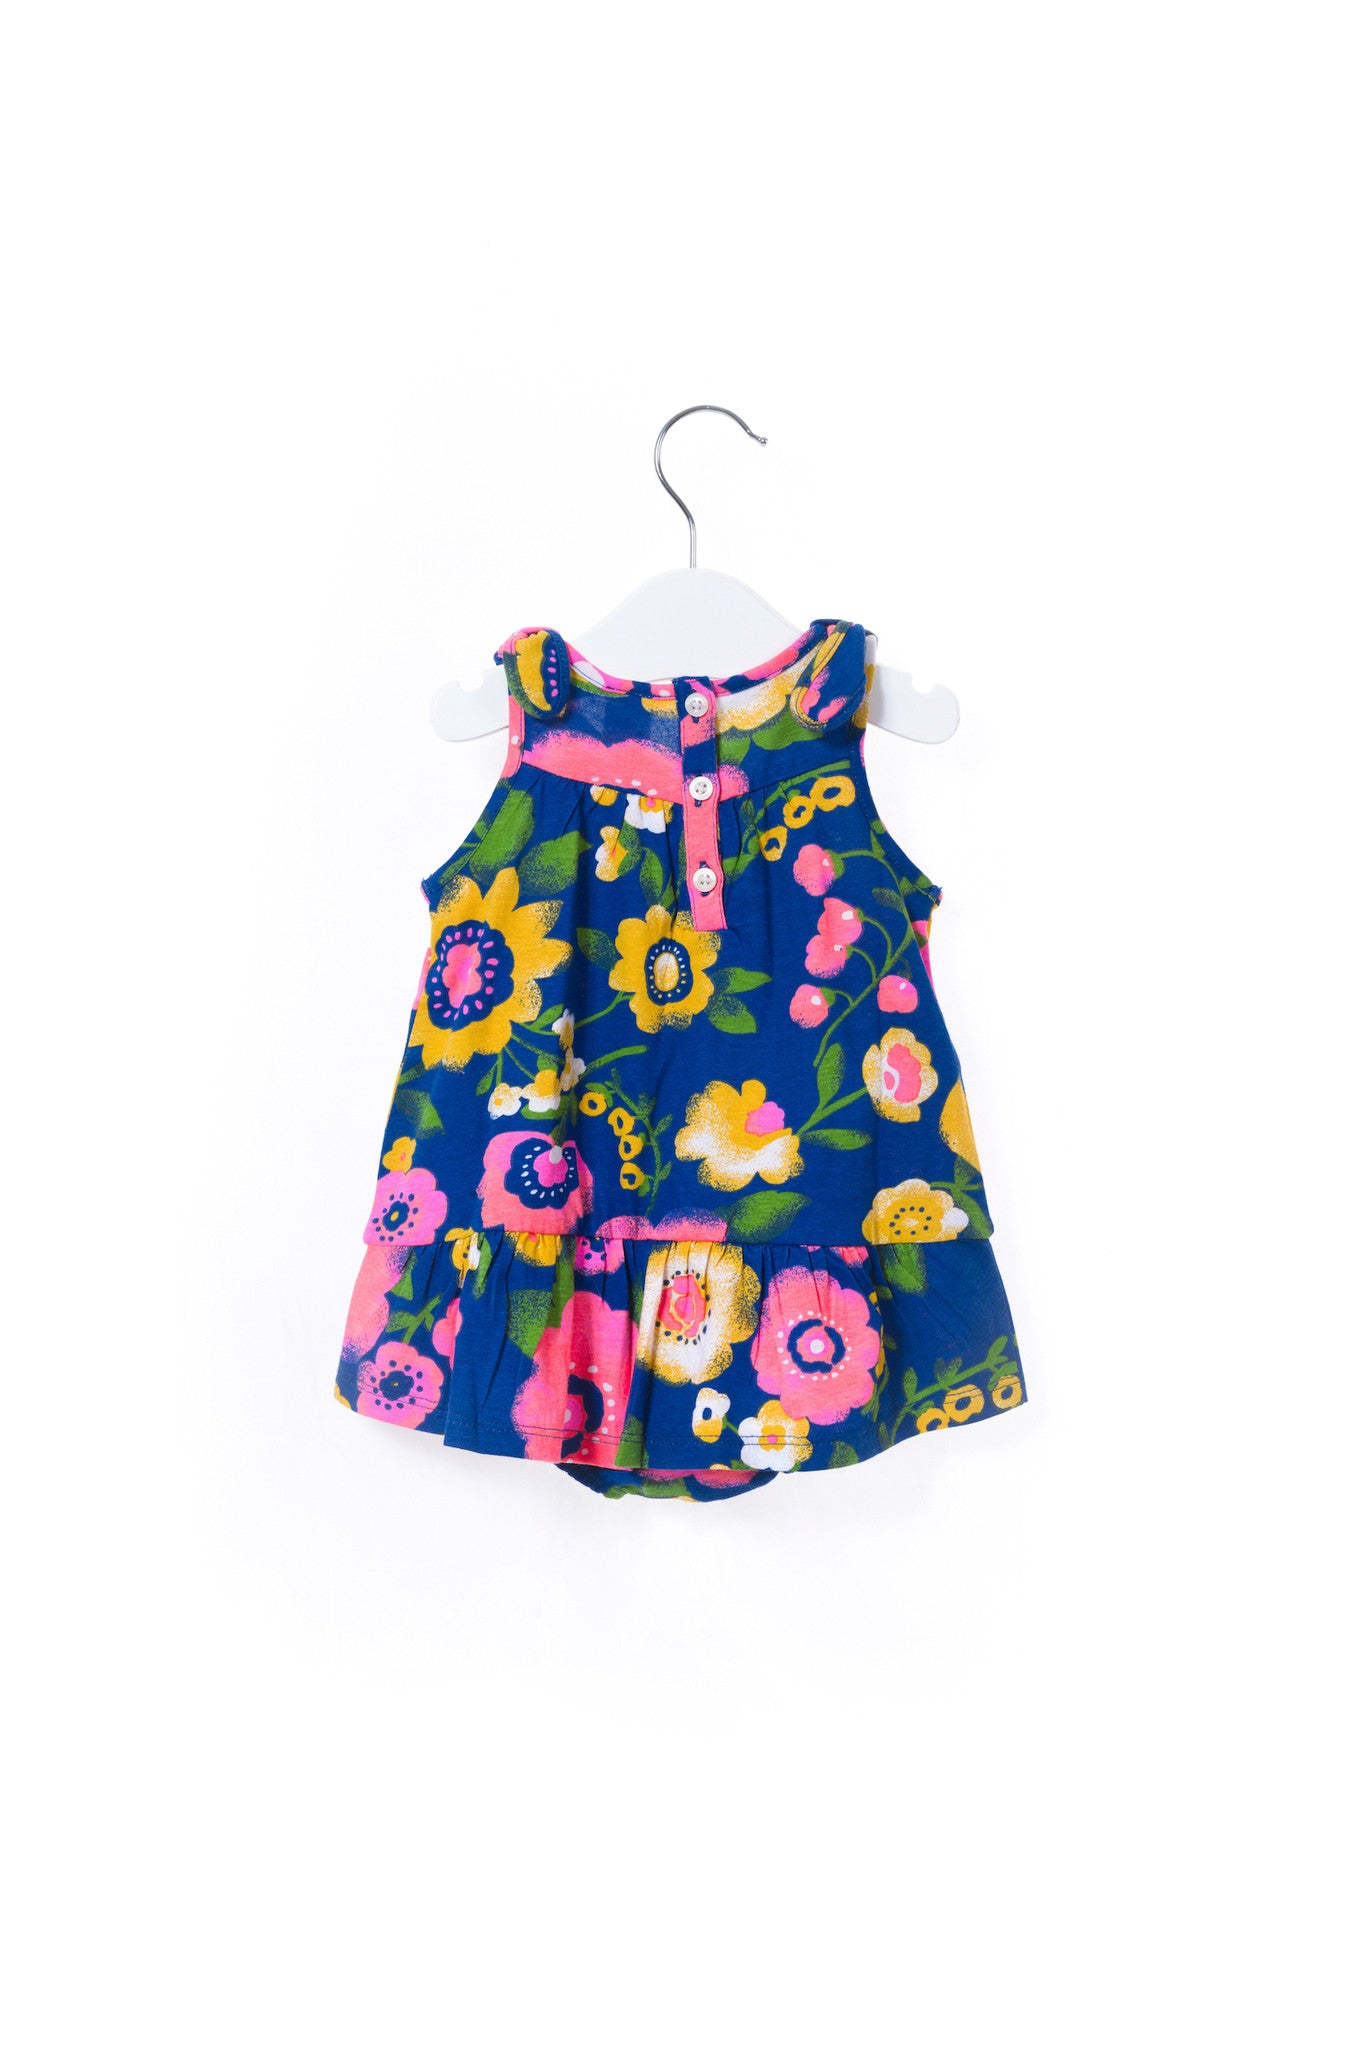 10001074~Dress & Bloomers 0-3M, Tucker & Tate at Retykle - Online Baby & Kids Clothing Up to 90% Off